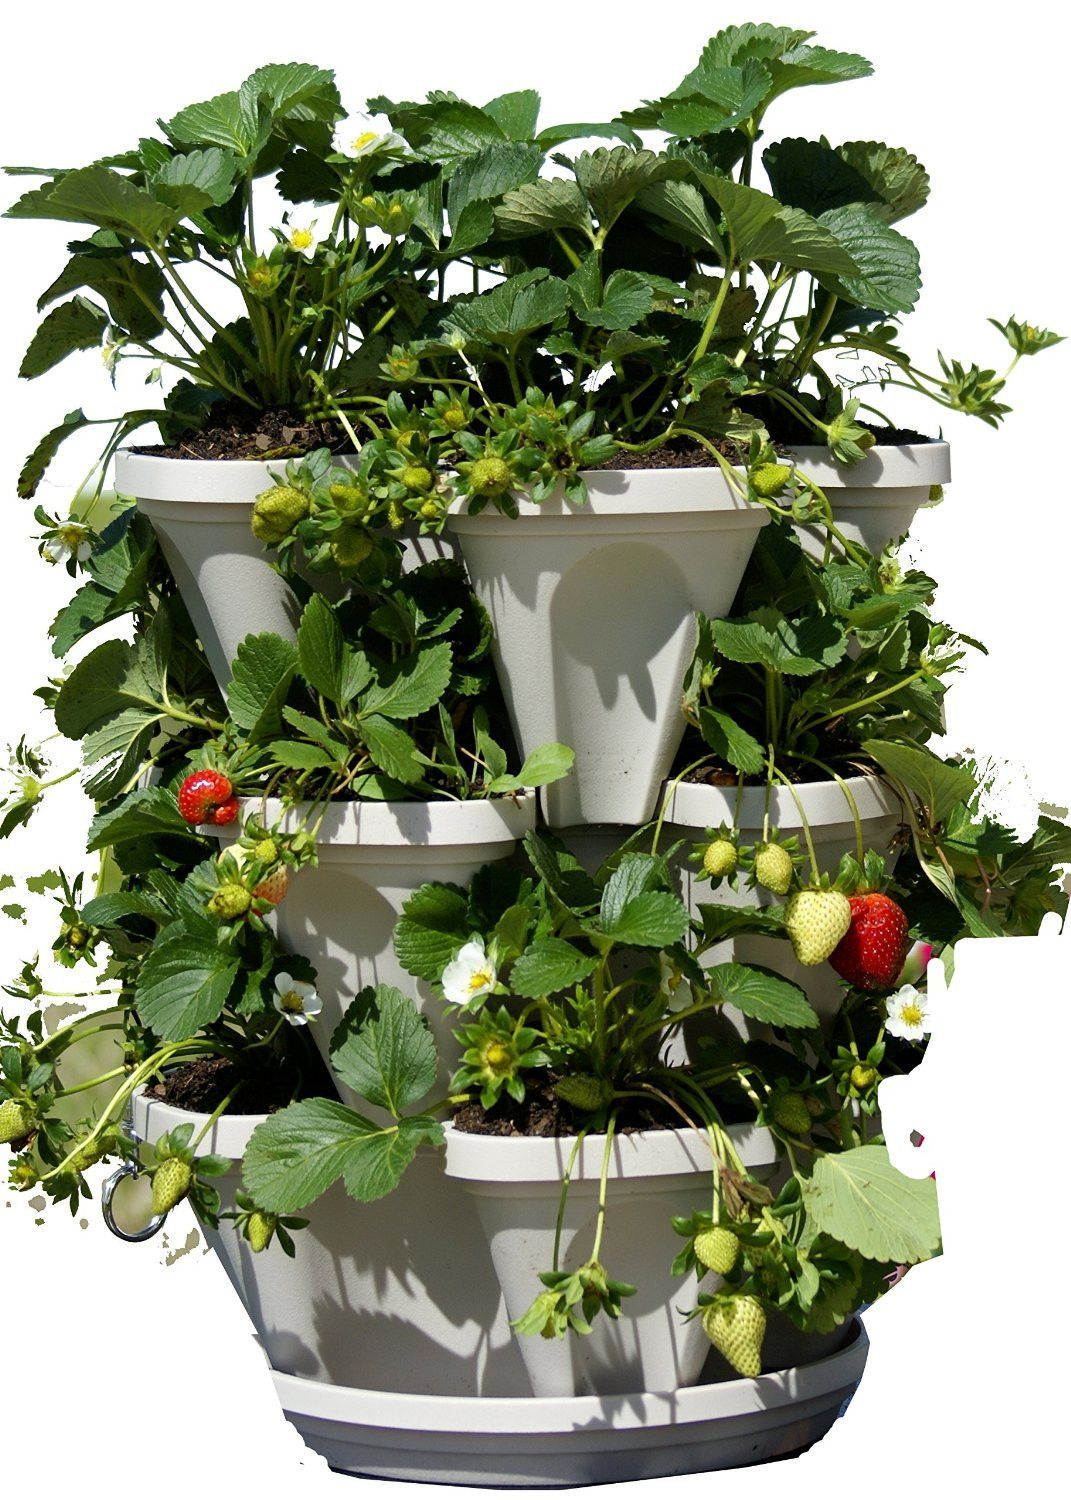 Grow Greens Herbs Strawberries Flowers Cacti And Much More A Simple E Saving Efficient Way To Garden Plant St Self Watering